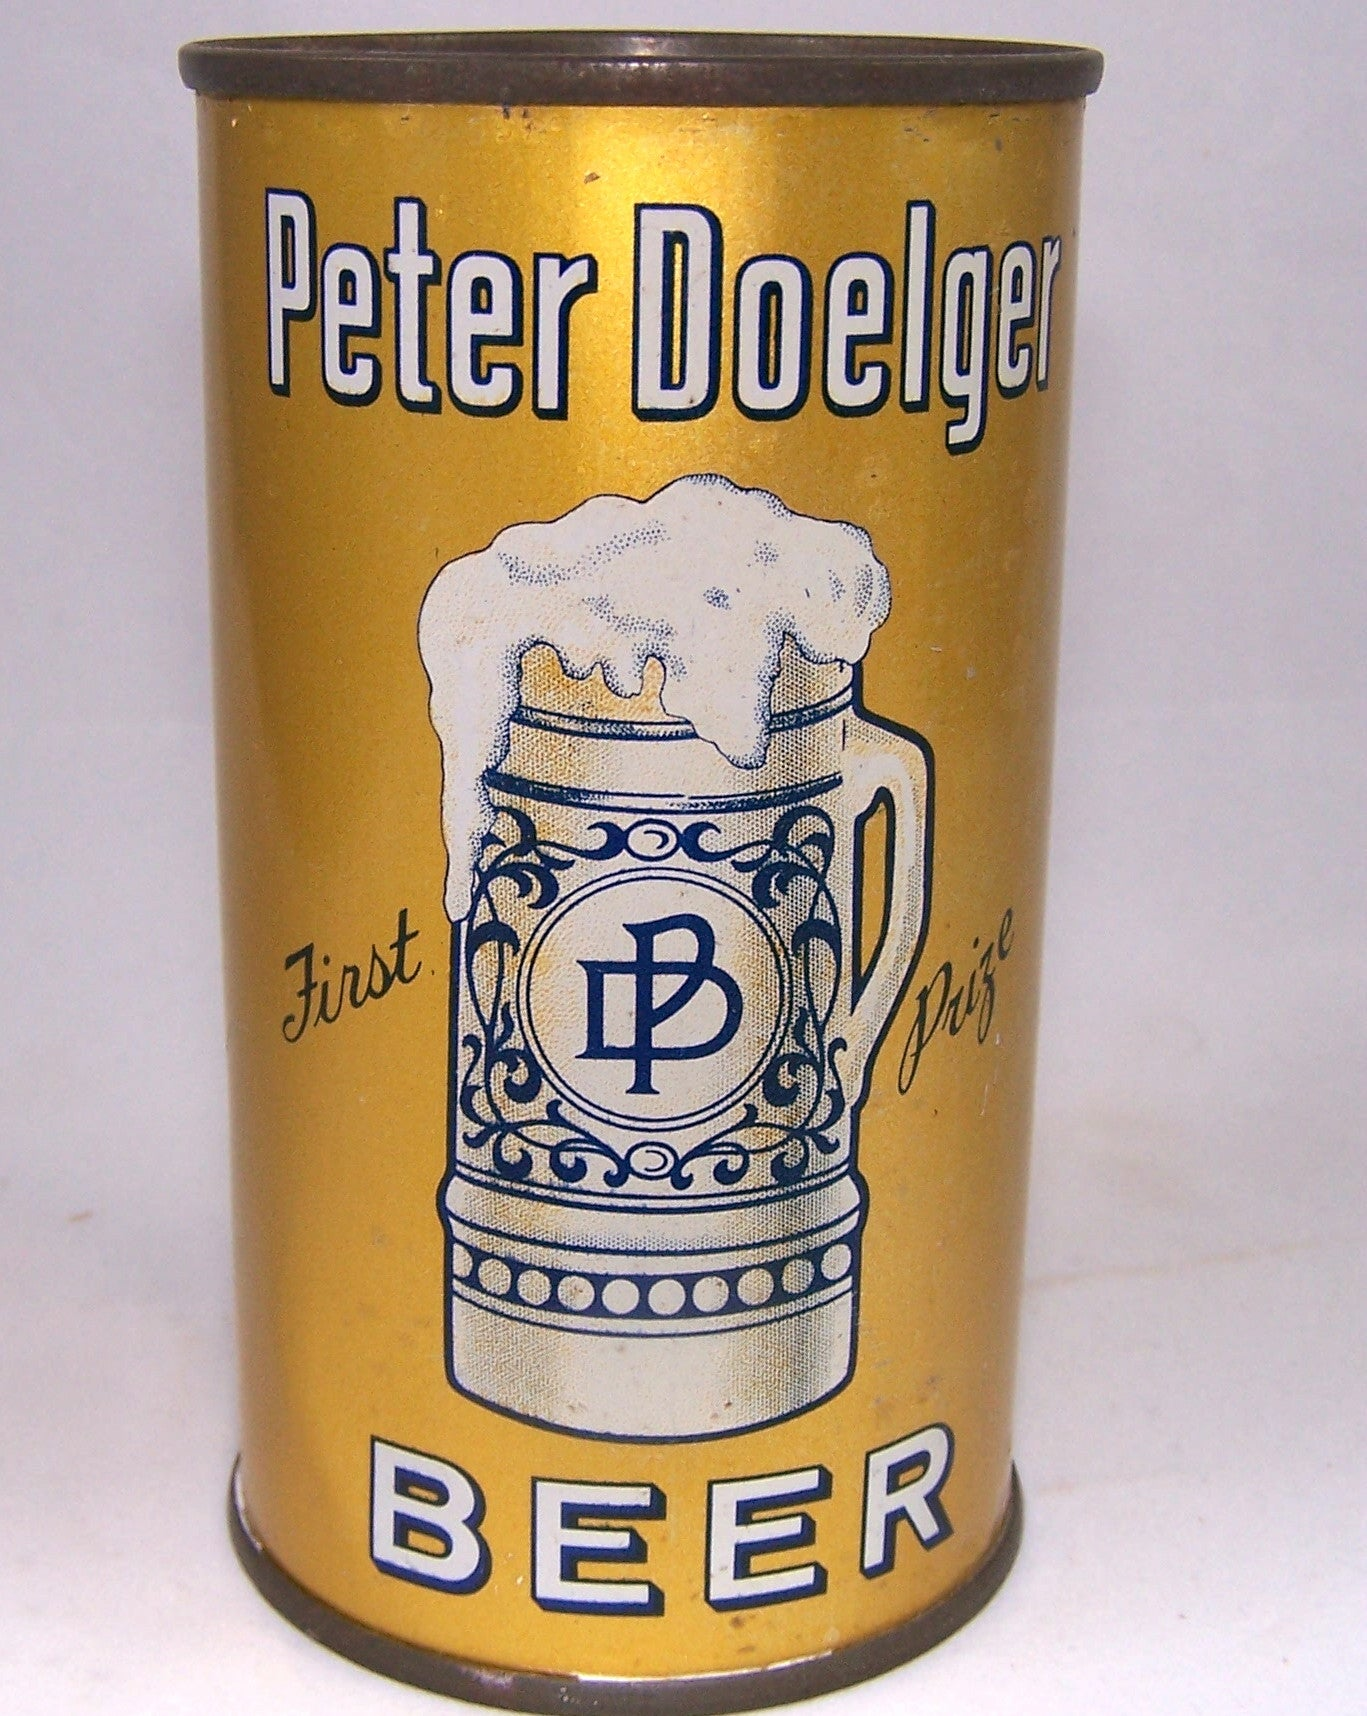 Peter Doelger Beer, patents pending, Lilek # 670, Grade 1/1- Sold on 03/09/18